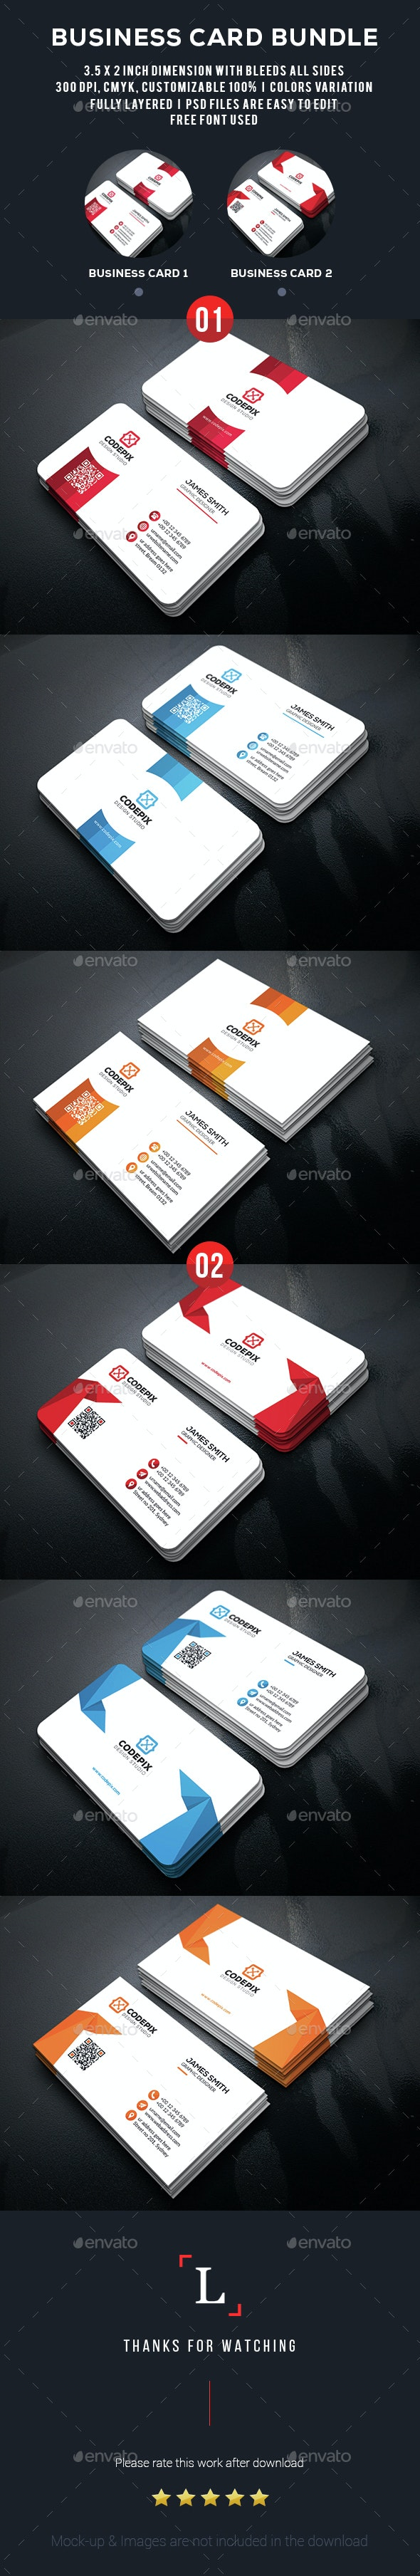 Clean Business Card Bundle - Business Cards Print Templates